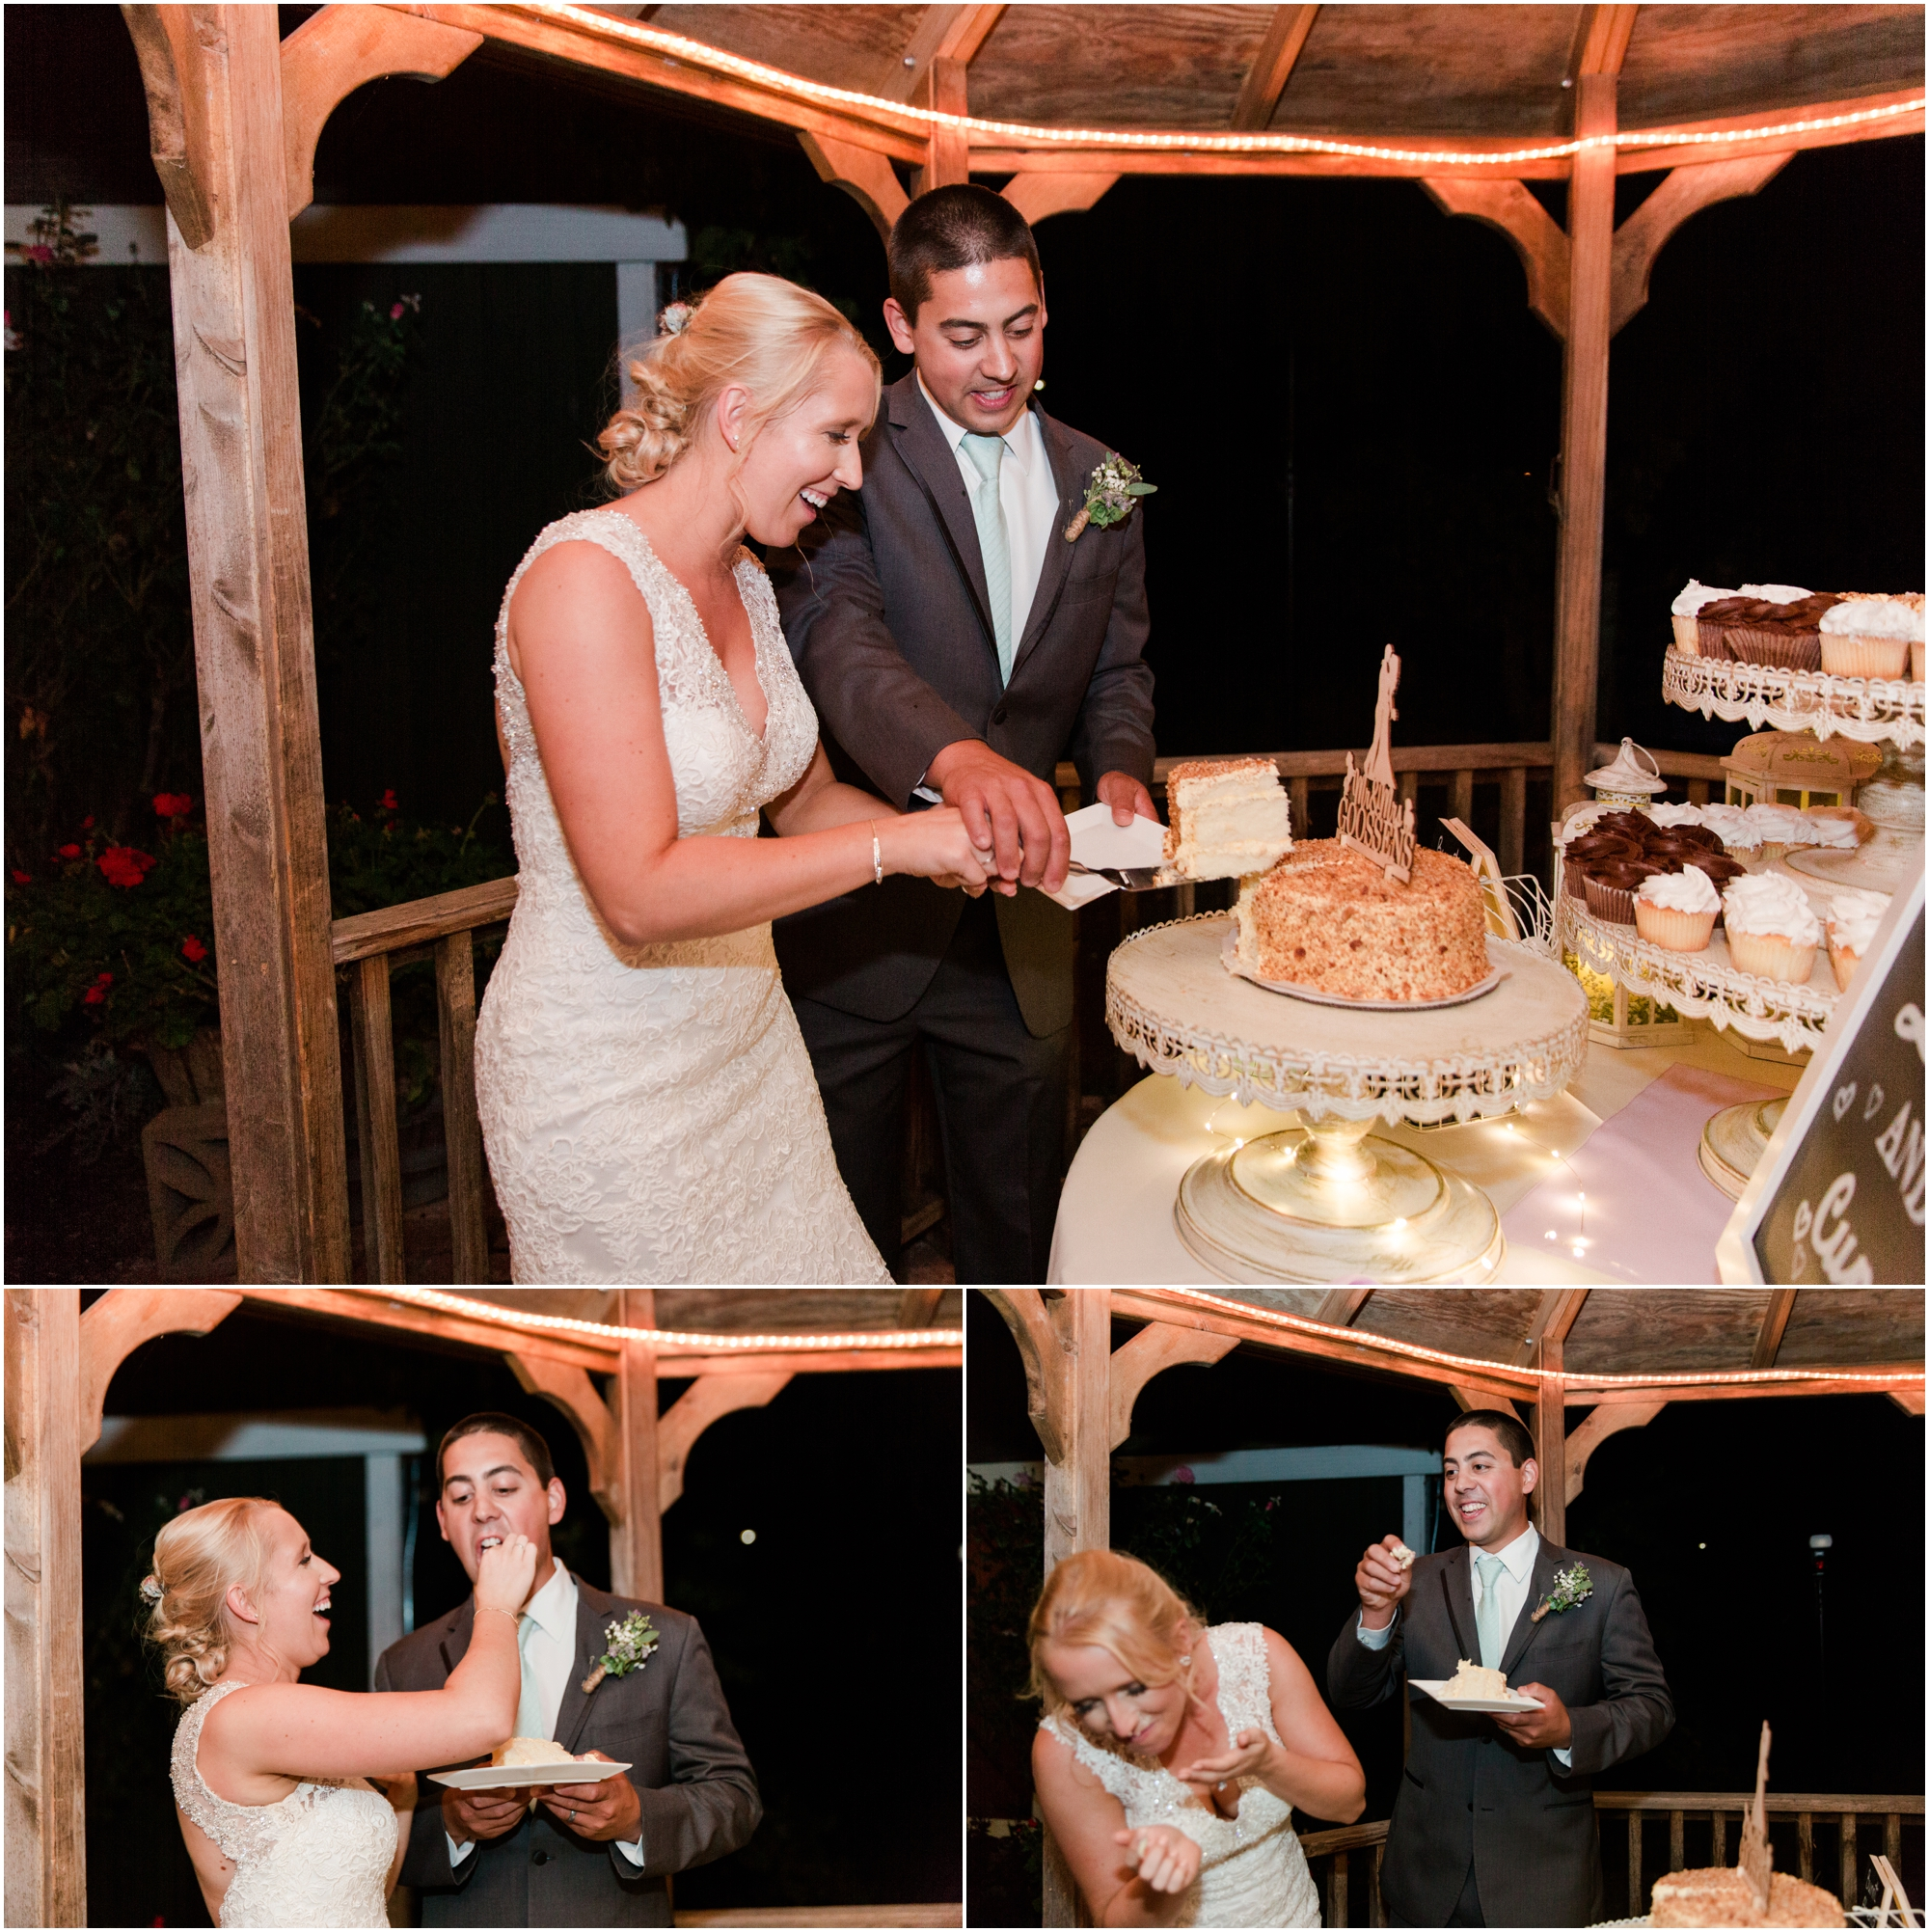 Retzlaff Winery wedding pictures by Briana Calderon Photography_2283.jpg